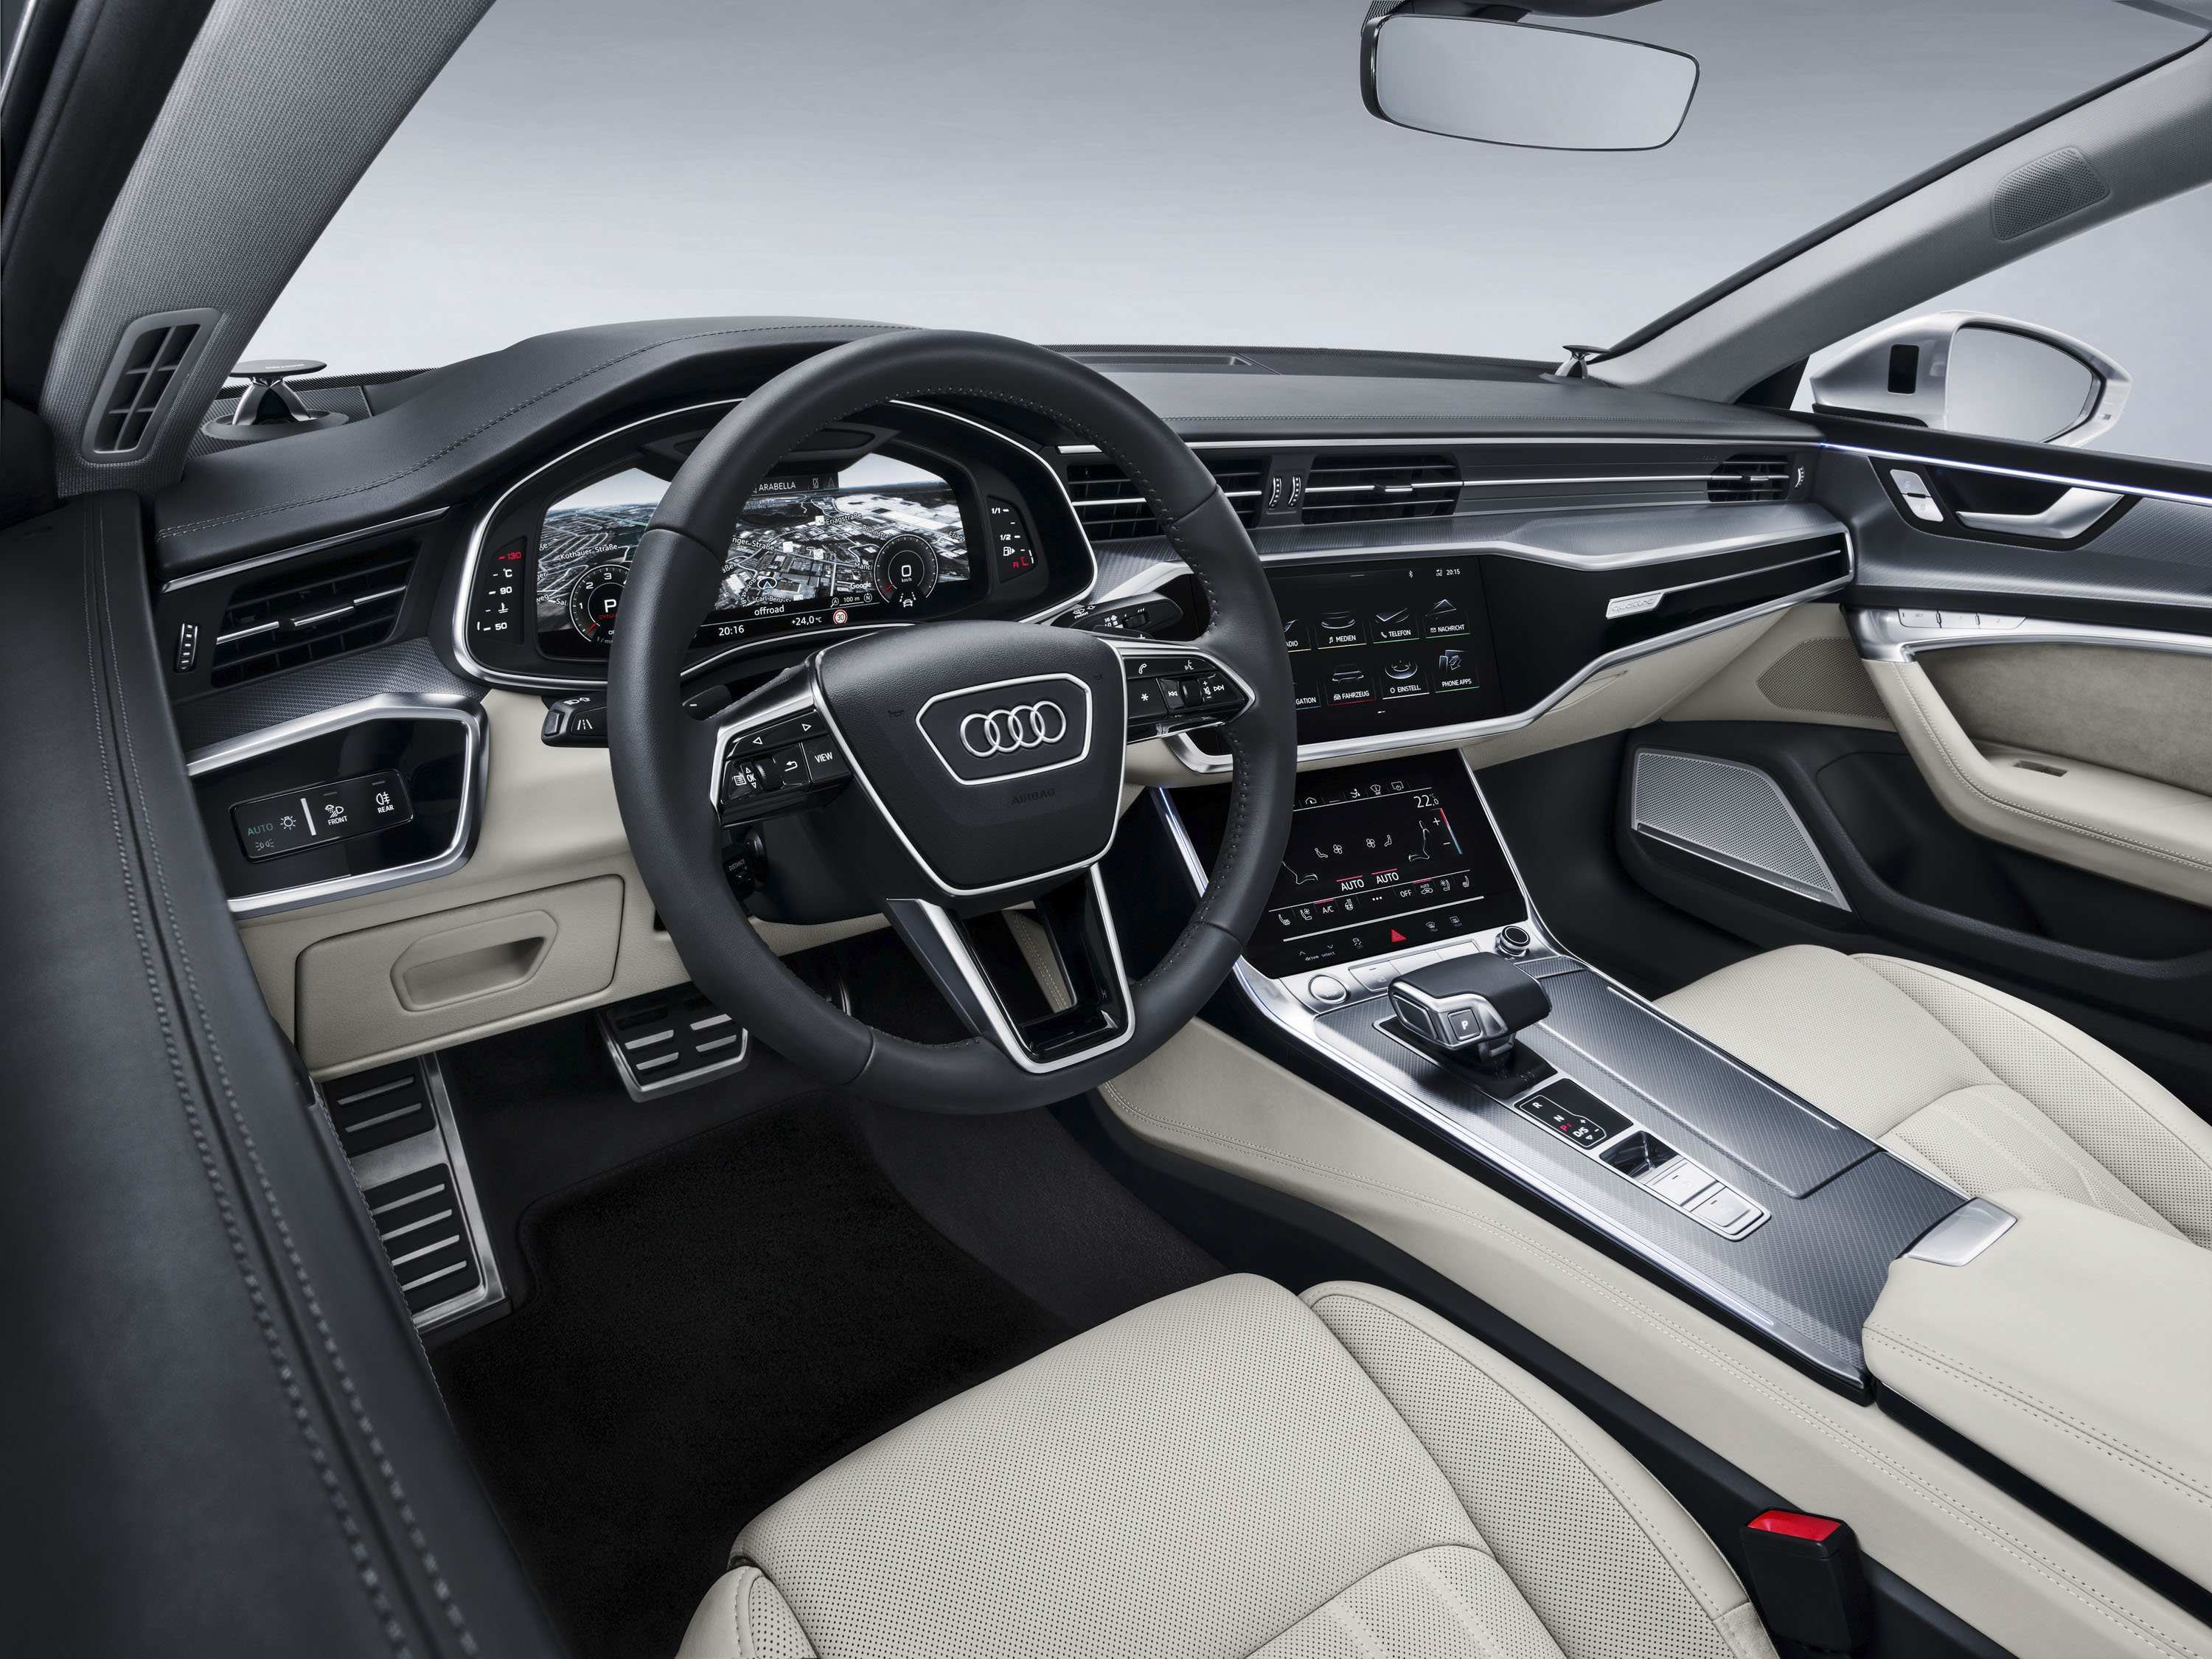 78 The New Audi A4 2020 Interior Research New for New Audi A4 2020 Interior